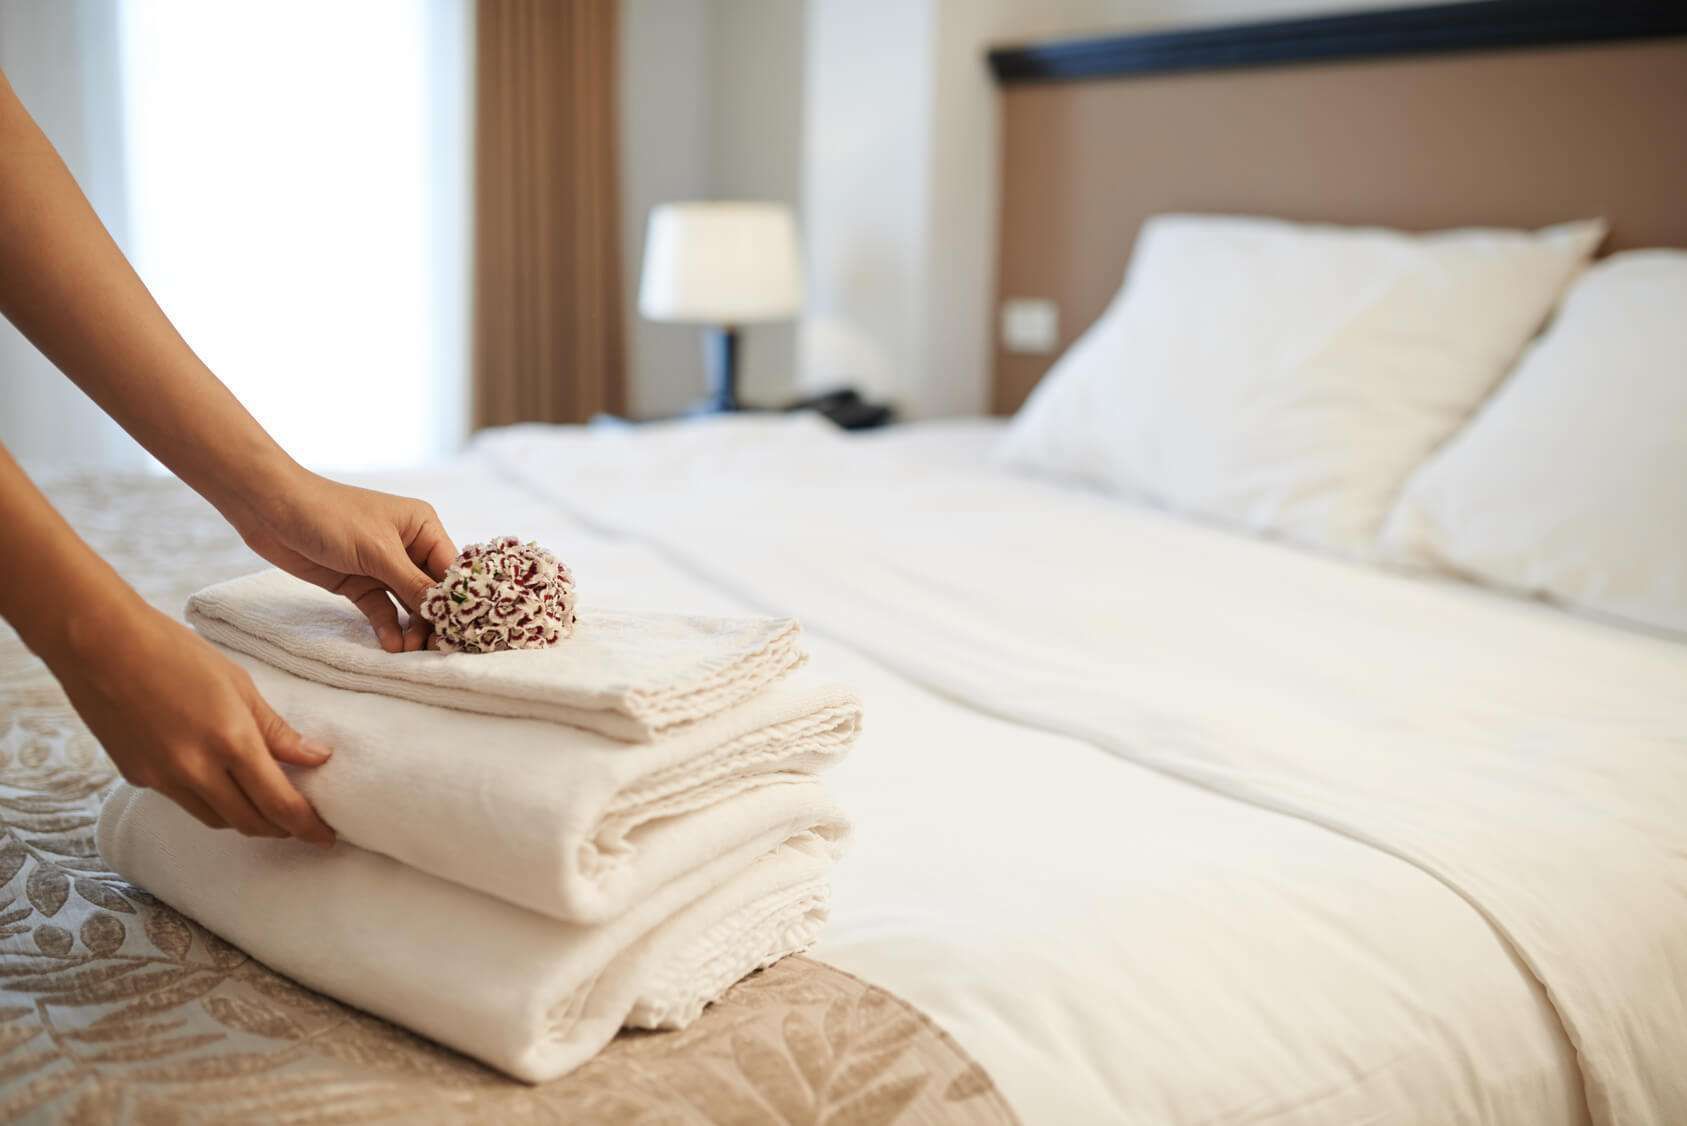 Saatva Mattress is a great design to alleviate back pain while sleeping.